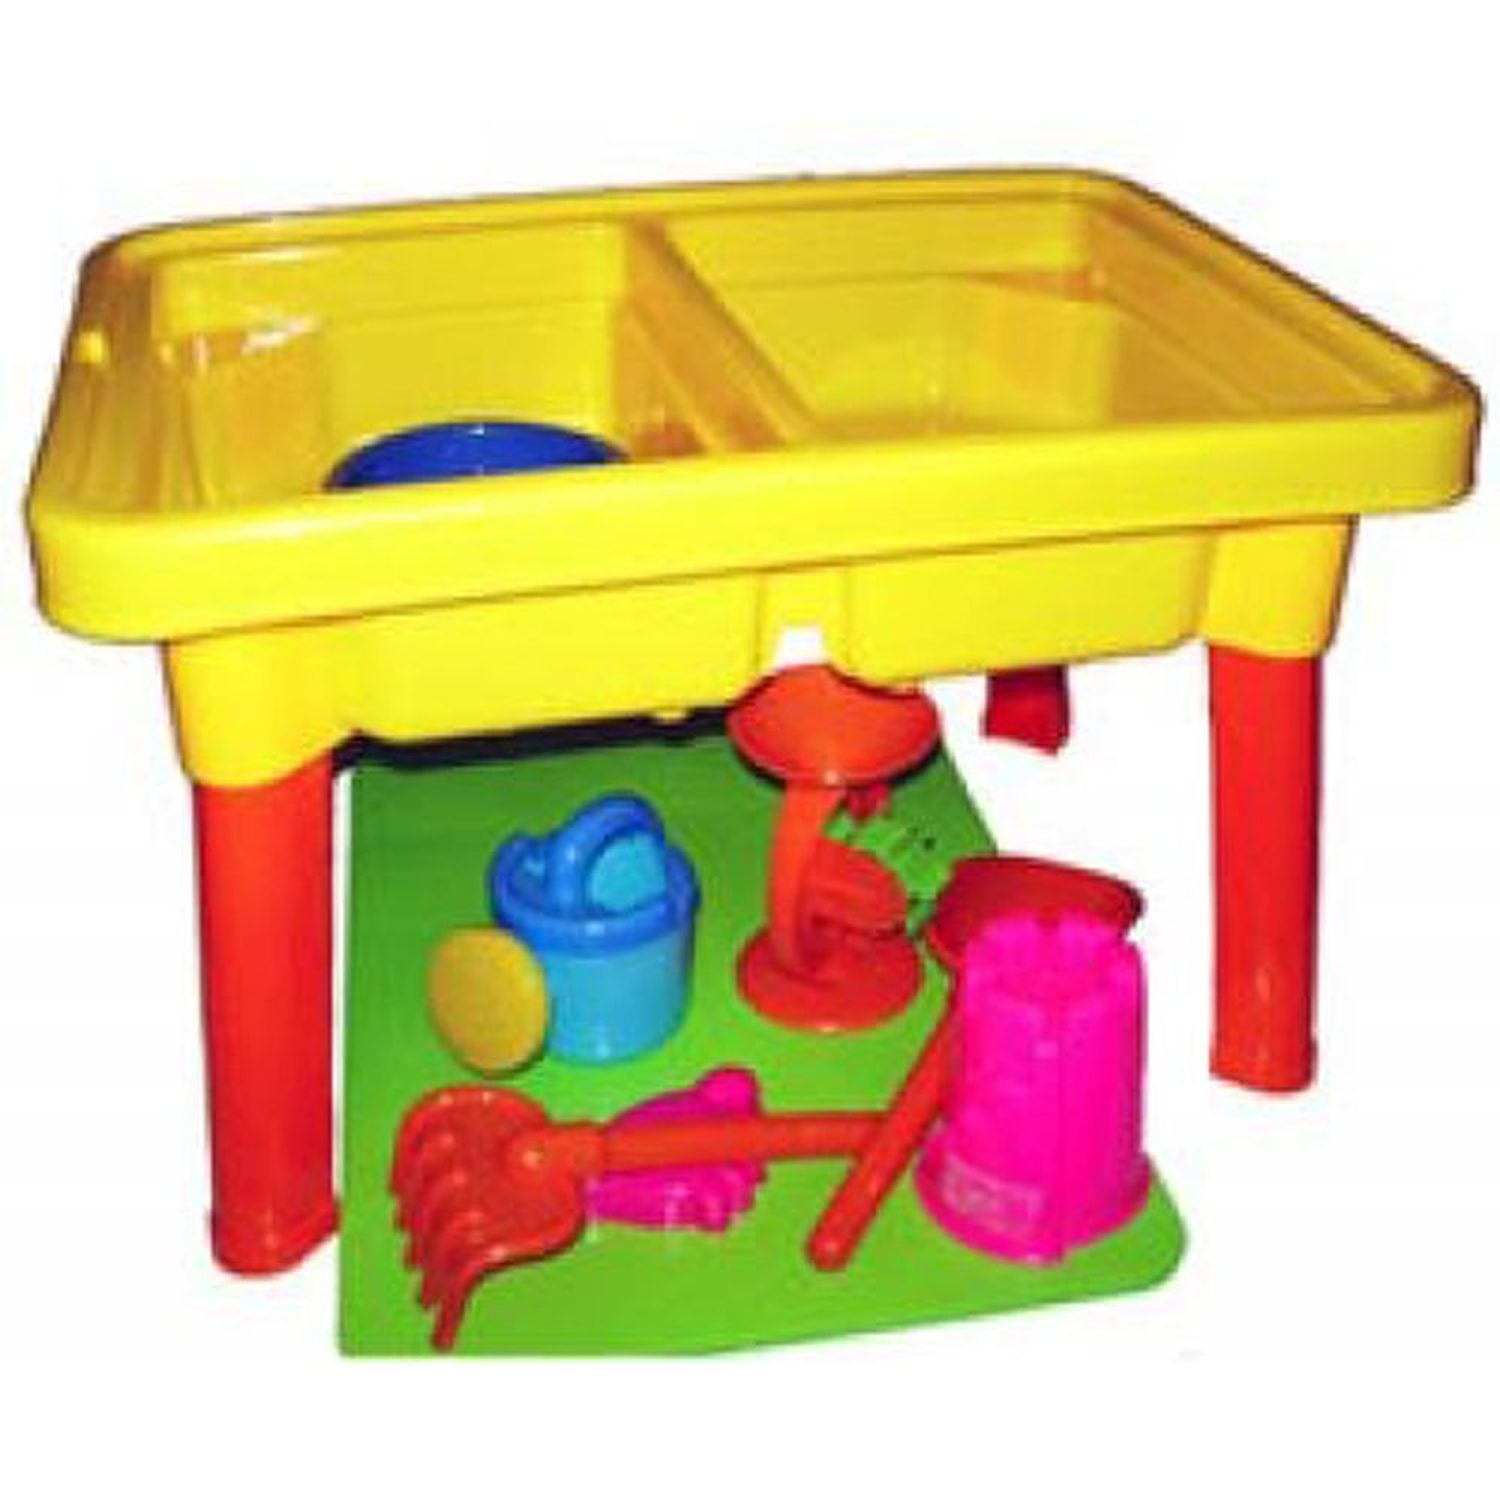 Sandbox Castle 2-in-1 Sand and Water Table with Beach Playset (Gift Idea)